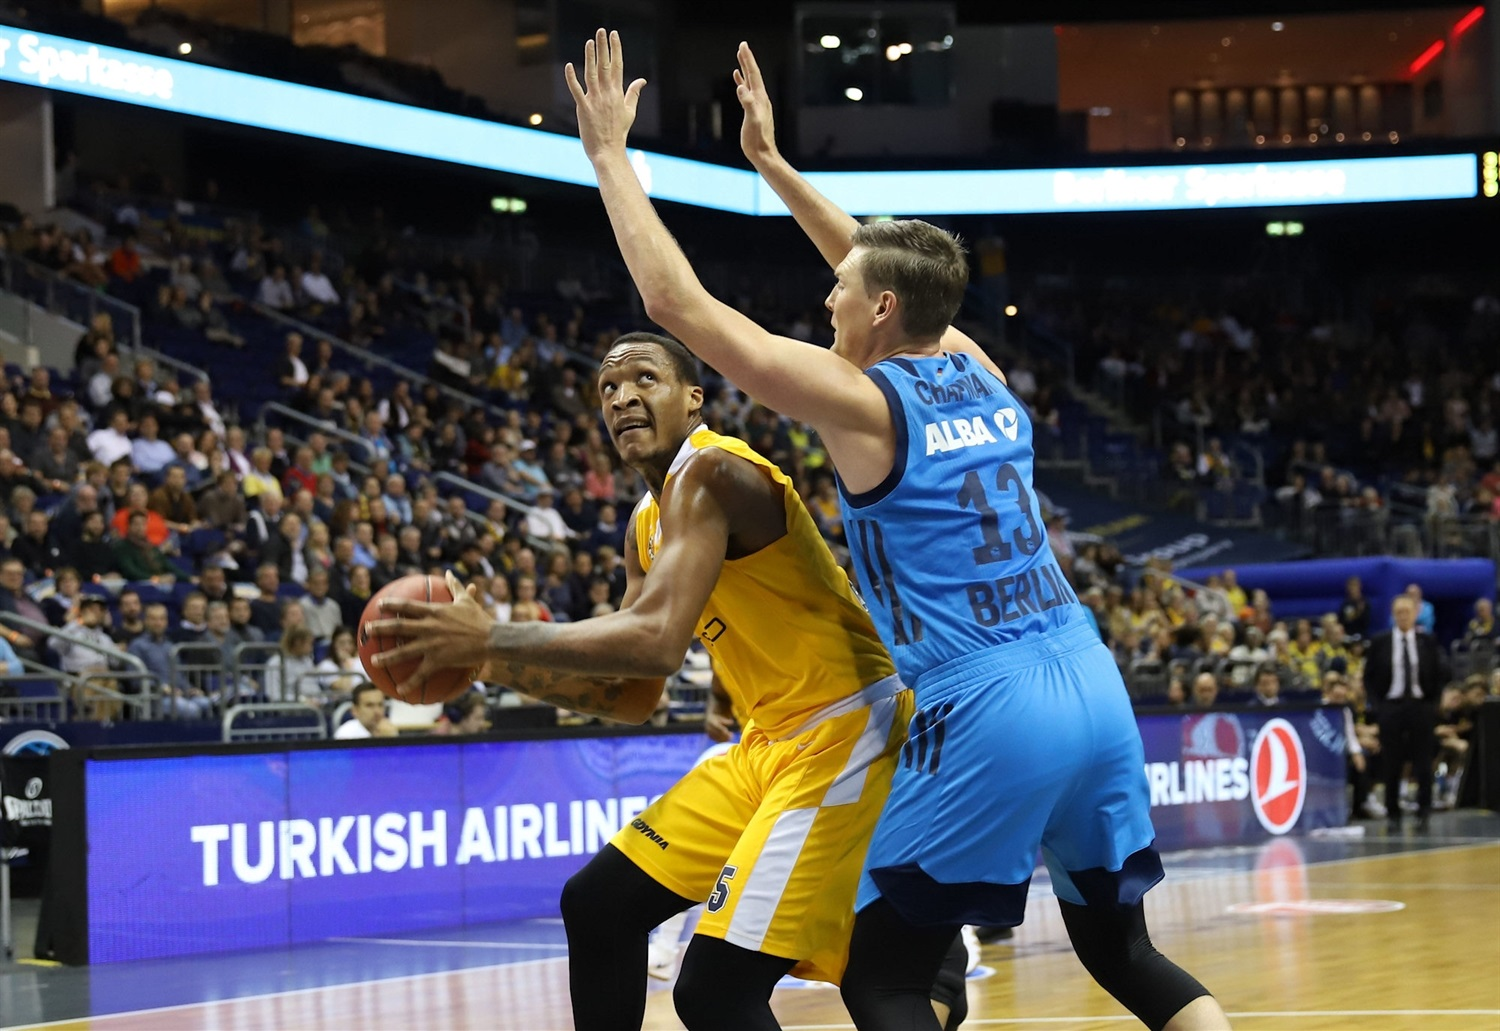 Robert Upshaw - Arka Gdynia (photo Andreas Knopf - ALBA) - EC18